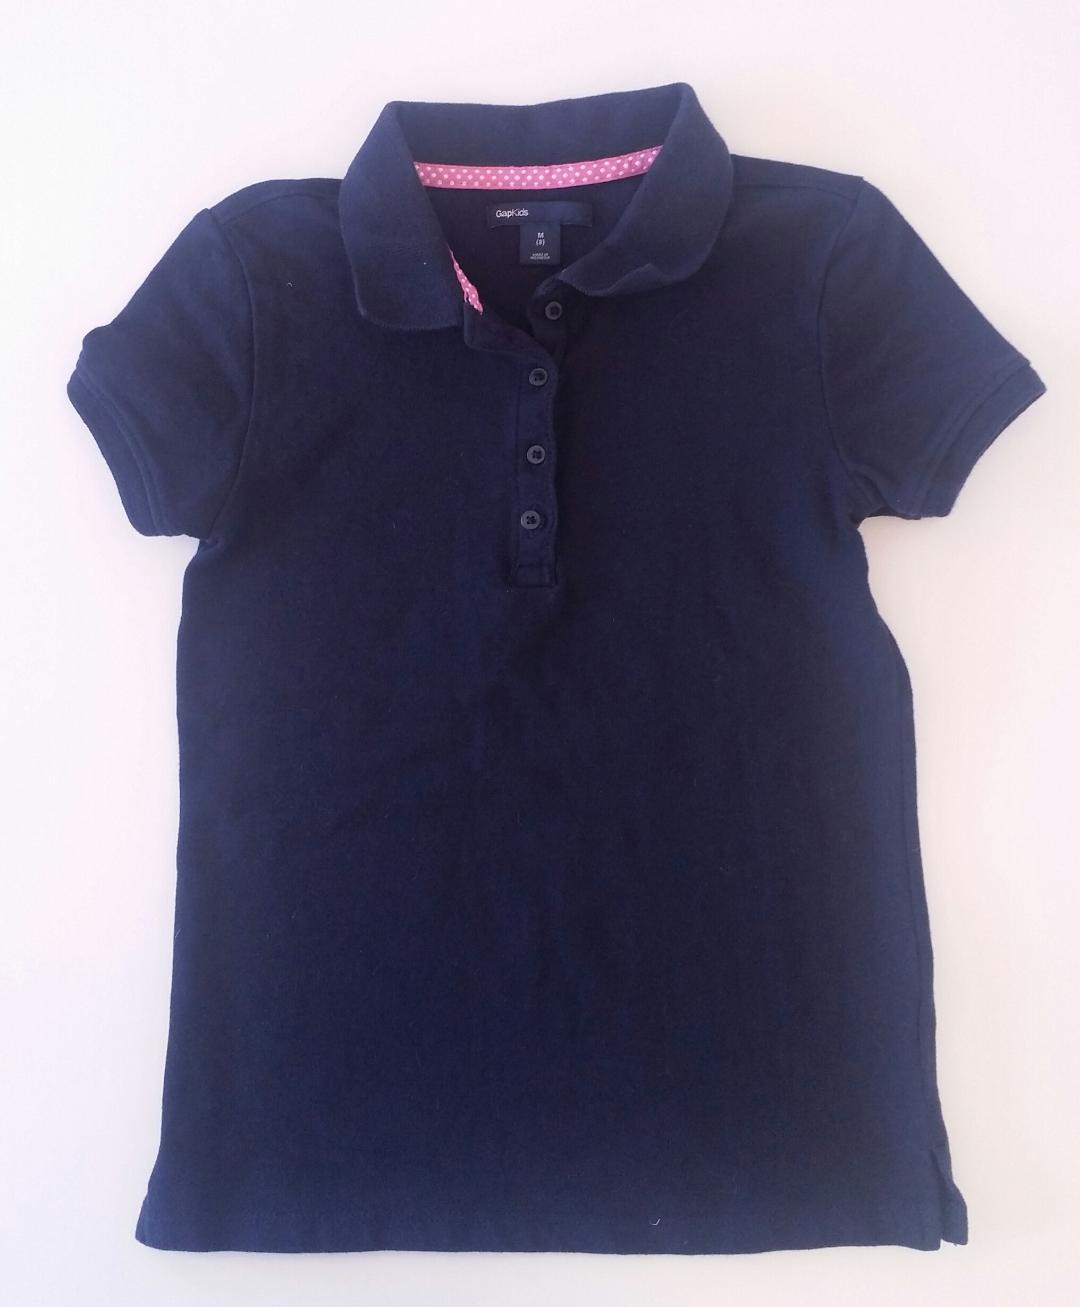 Gap-8-YEARS-Polo-Shirt_2079118A.jpg